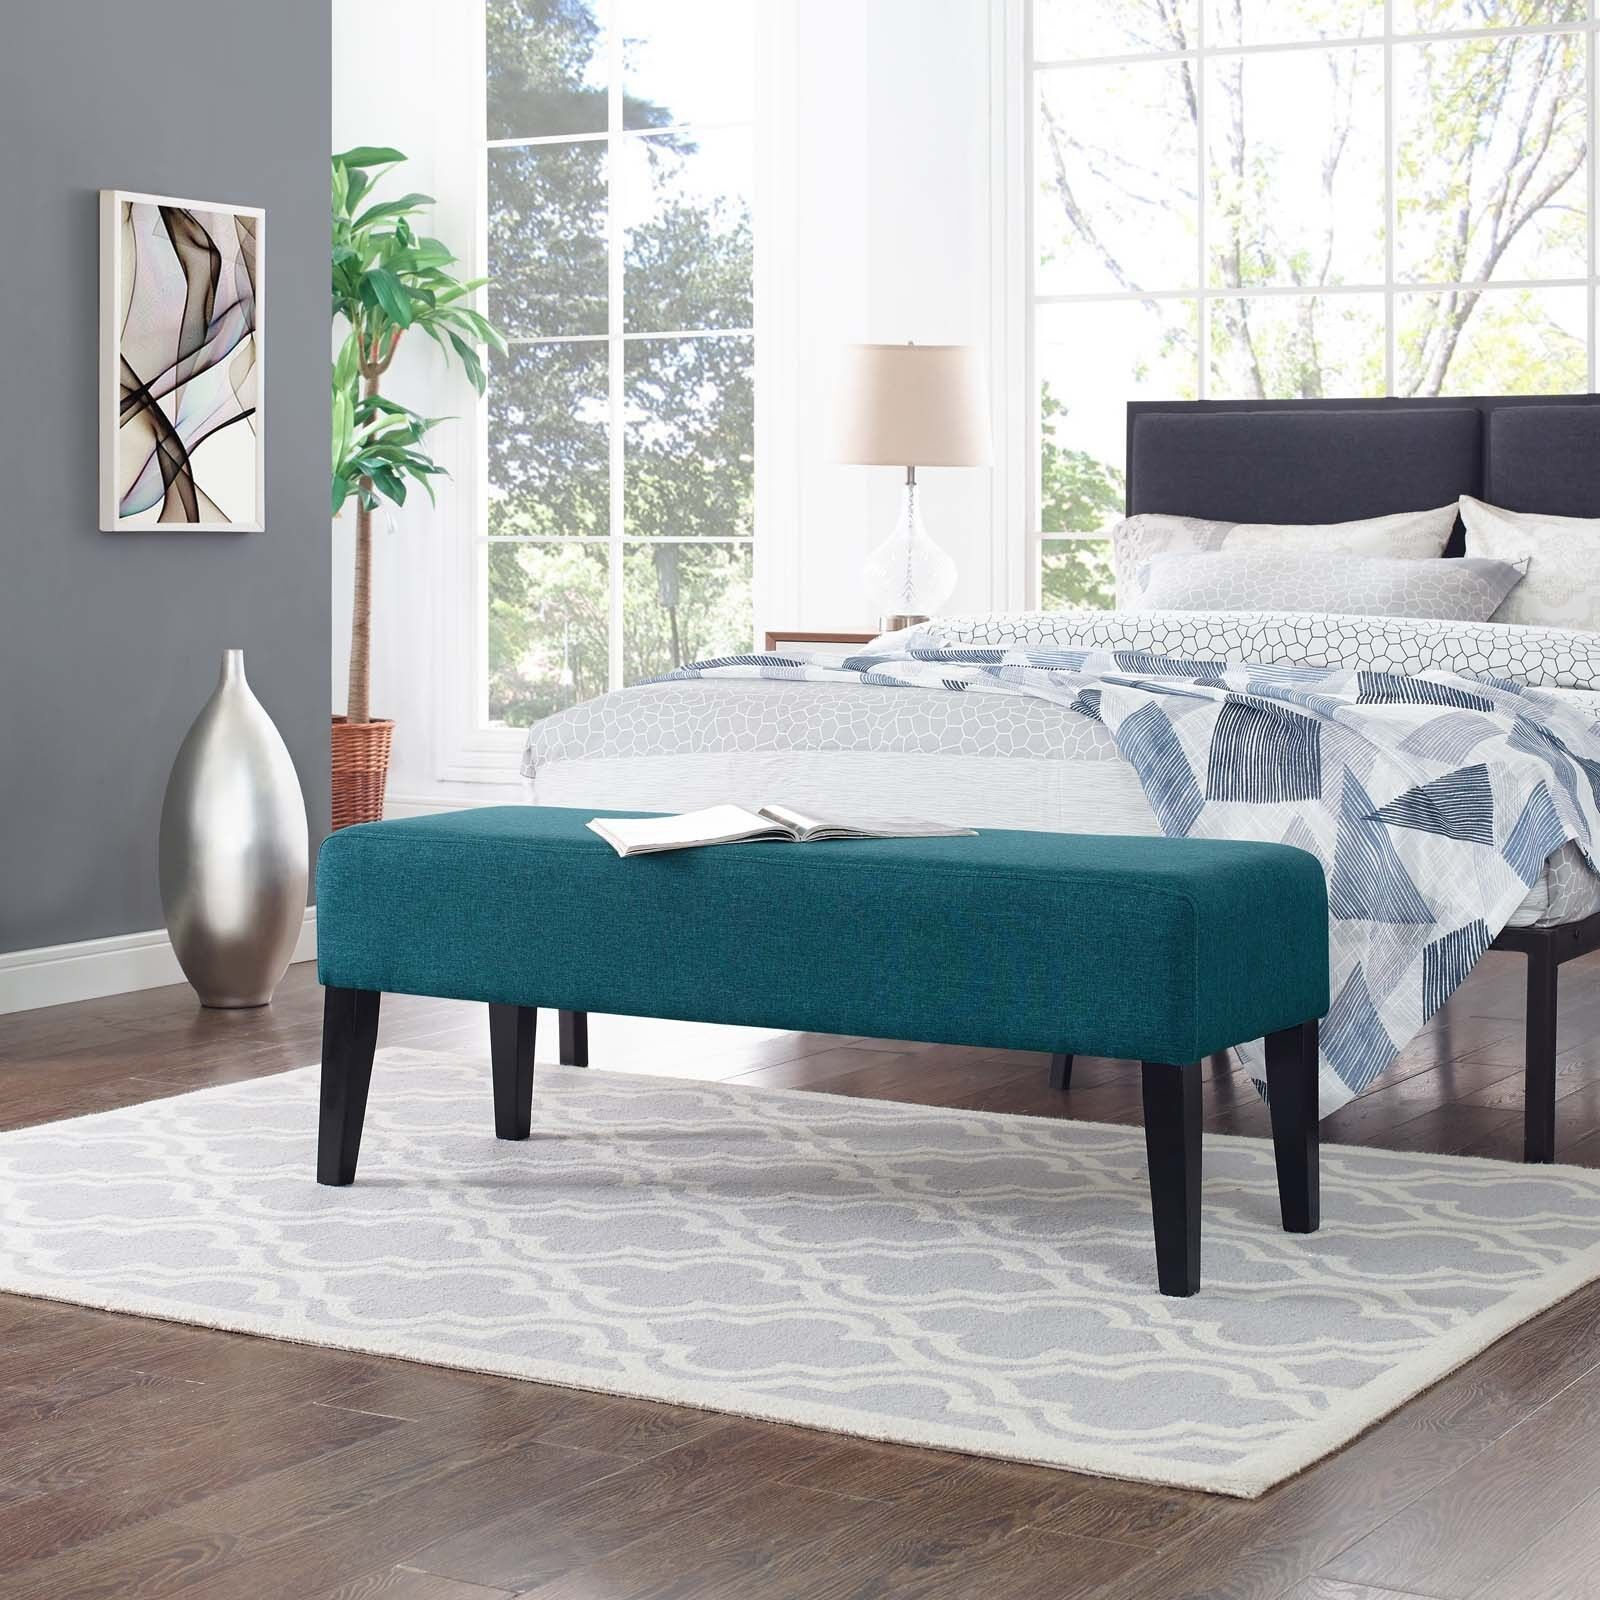 Details about Contemporary Modern Upholstered Fabric Bench in Teal